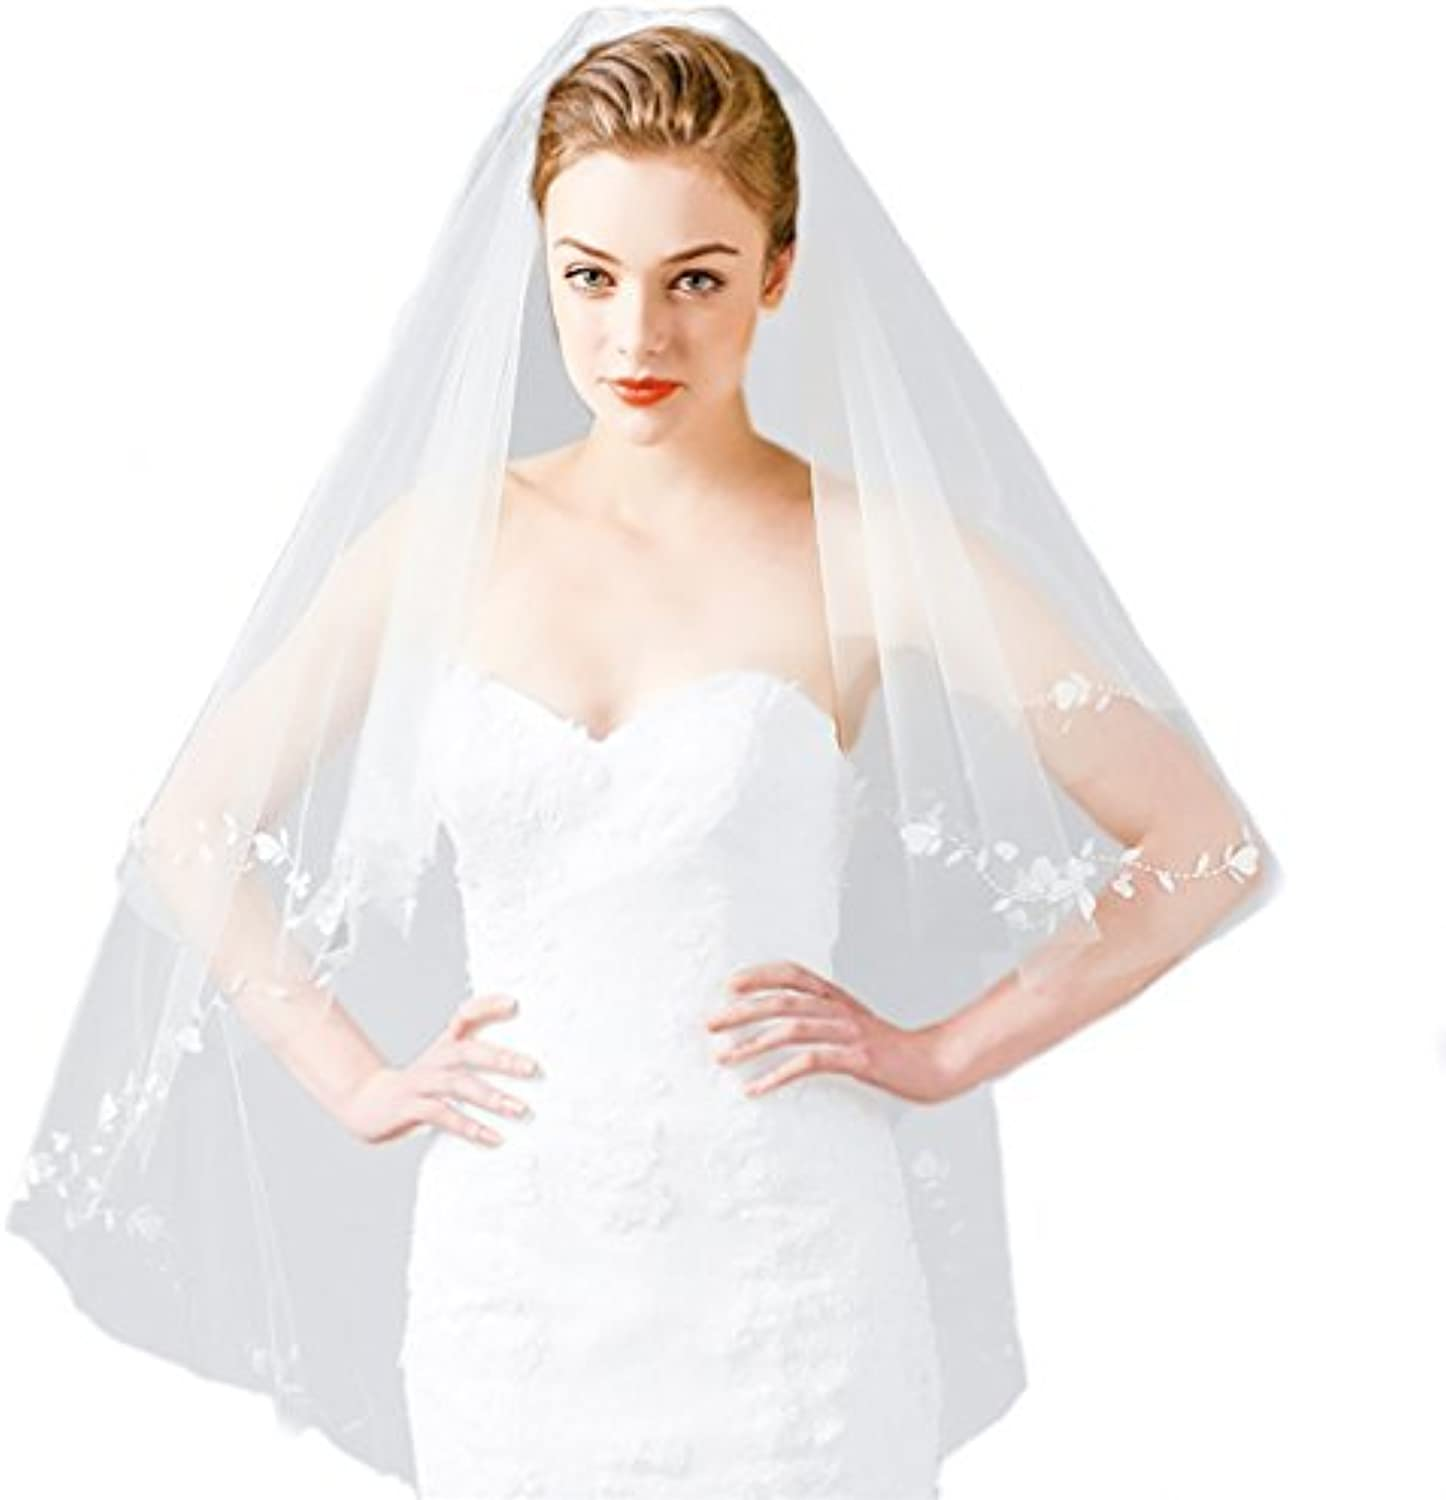 Cereoth rustic bridal veil ivory 2 Tiers fingertip with white lace